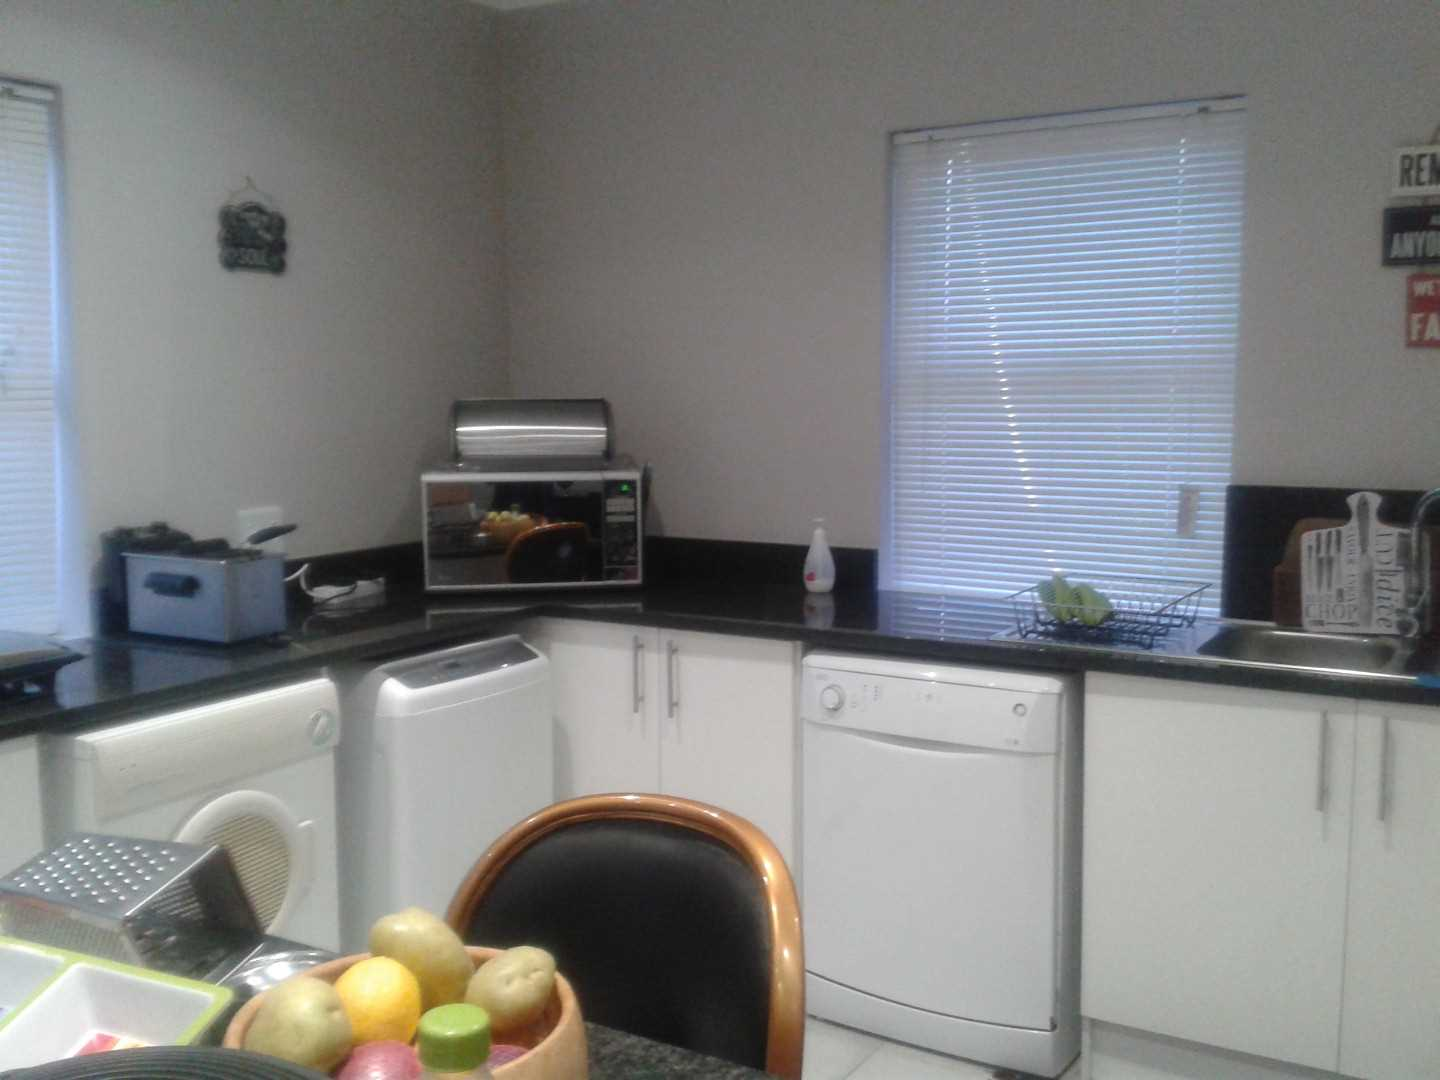 Space for the Kitchen Appliances.